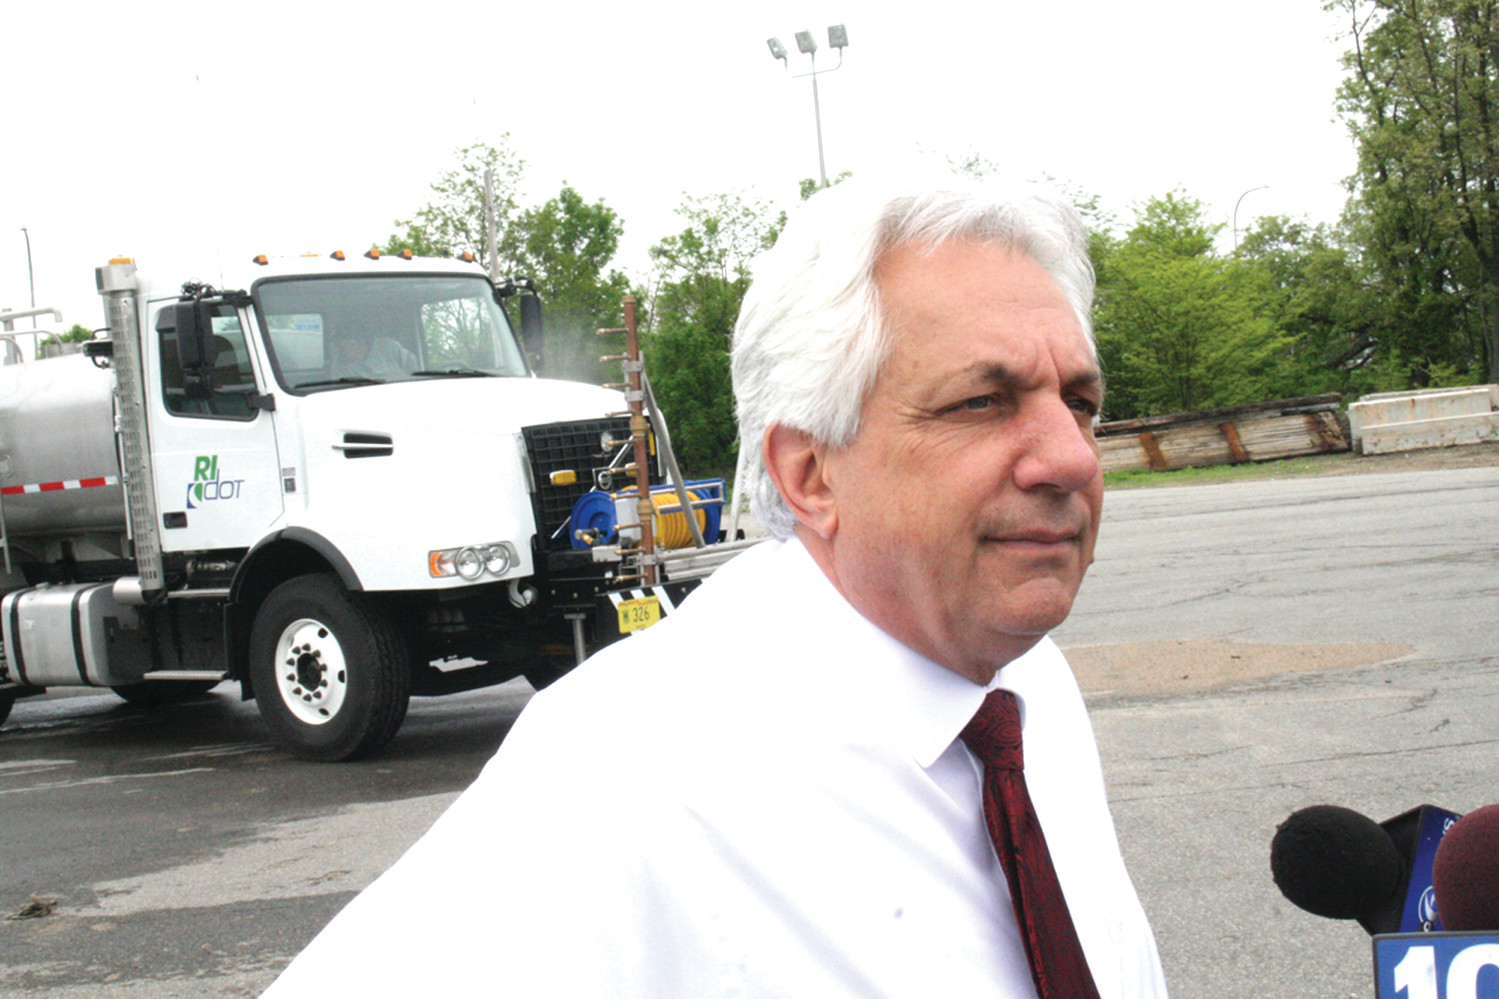 A MAN AND HIS TRUCK: Peter Alviti, the director of the DOT, talks about the trucks that will be used to clean Rhode Island's 1,179 bridges in the coming months.